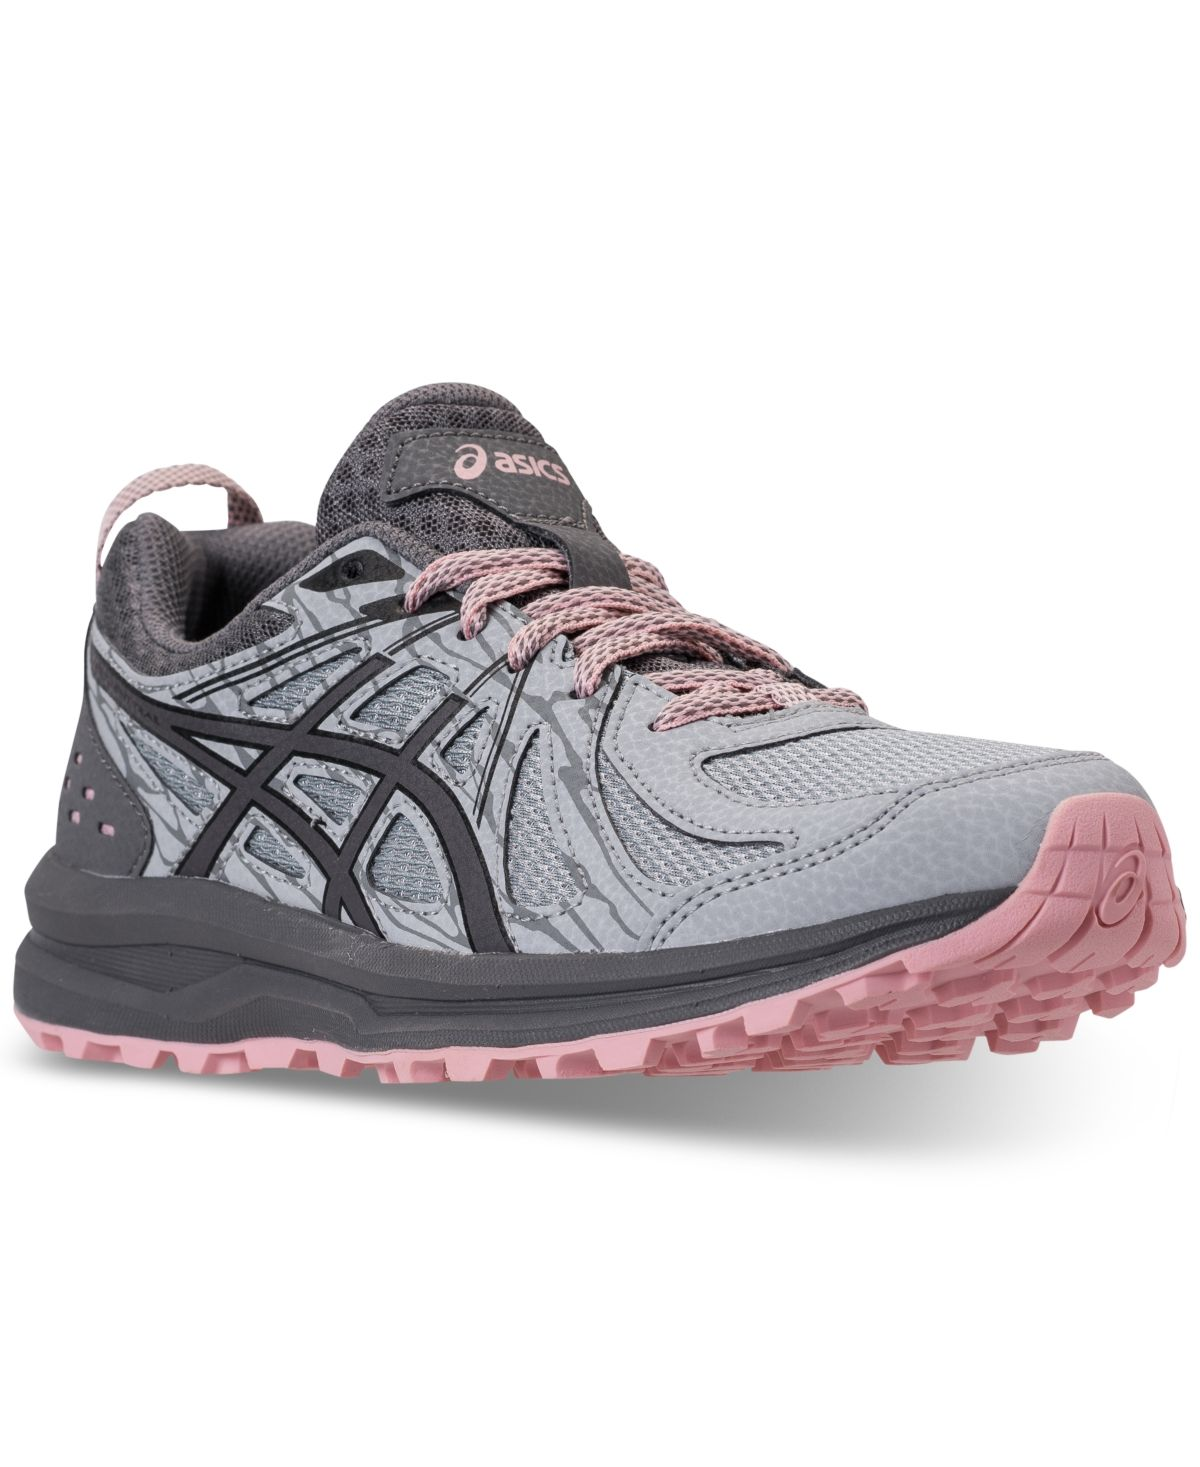 asics women's frequent trail running shoes reviews 50